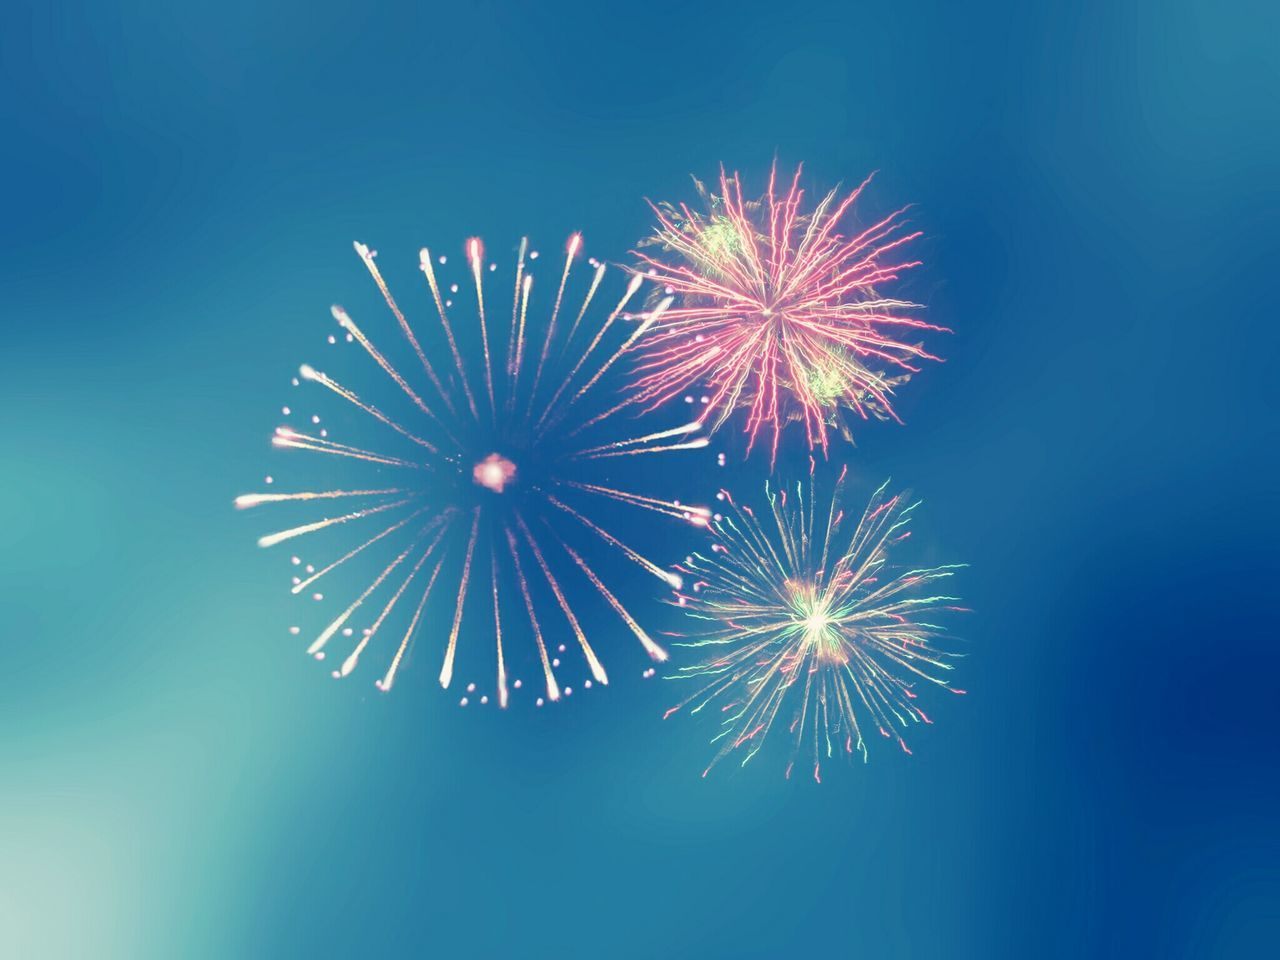 LOW ANGLE VIEW OF FIREWORK DISPLAY IN SKY